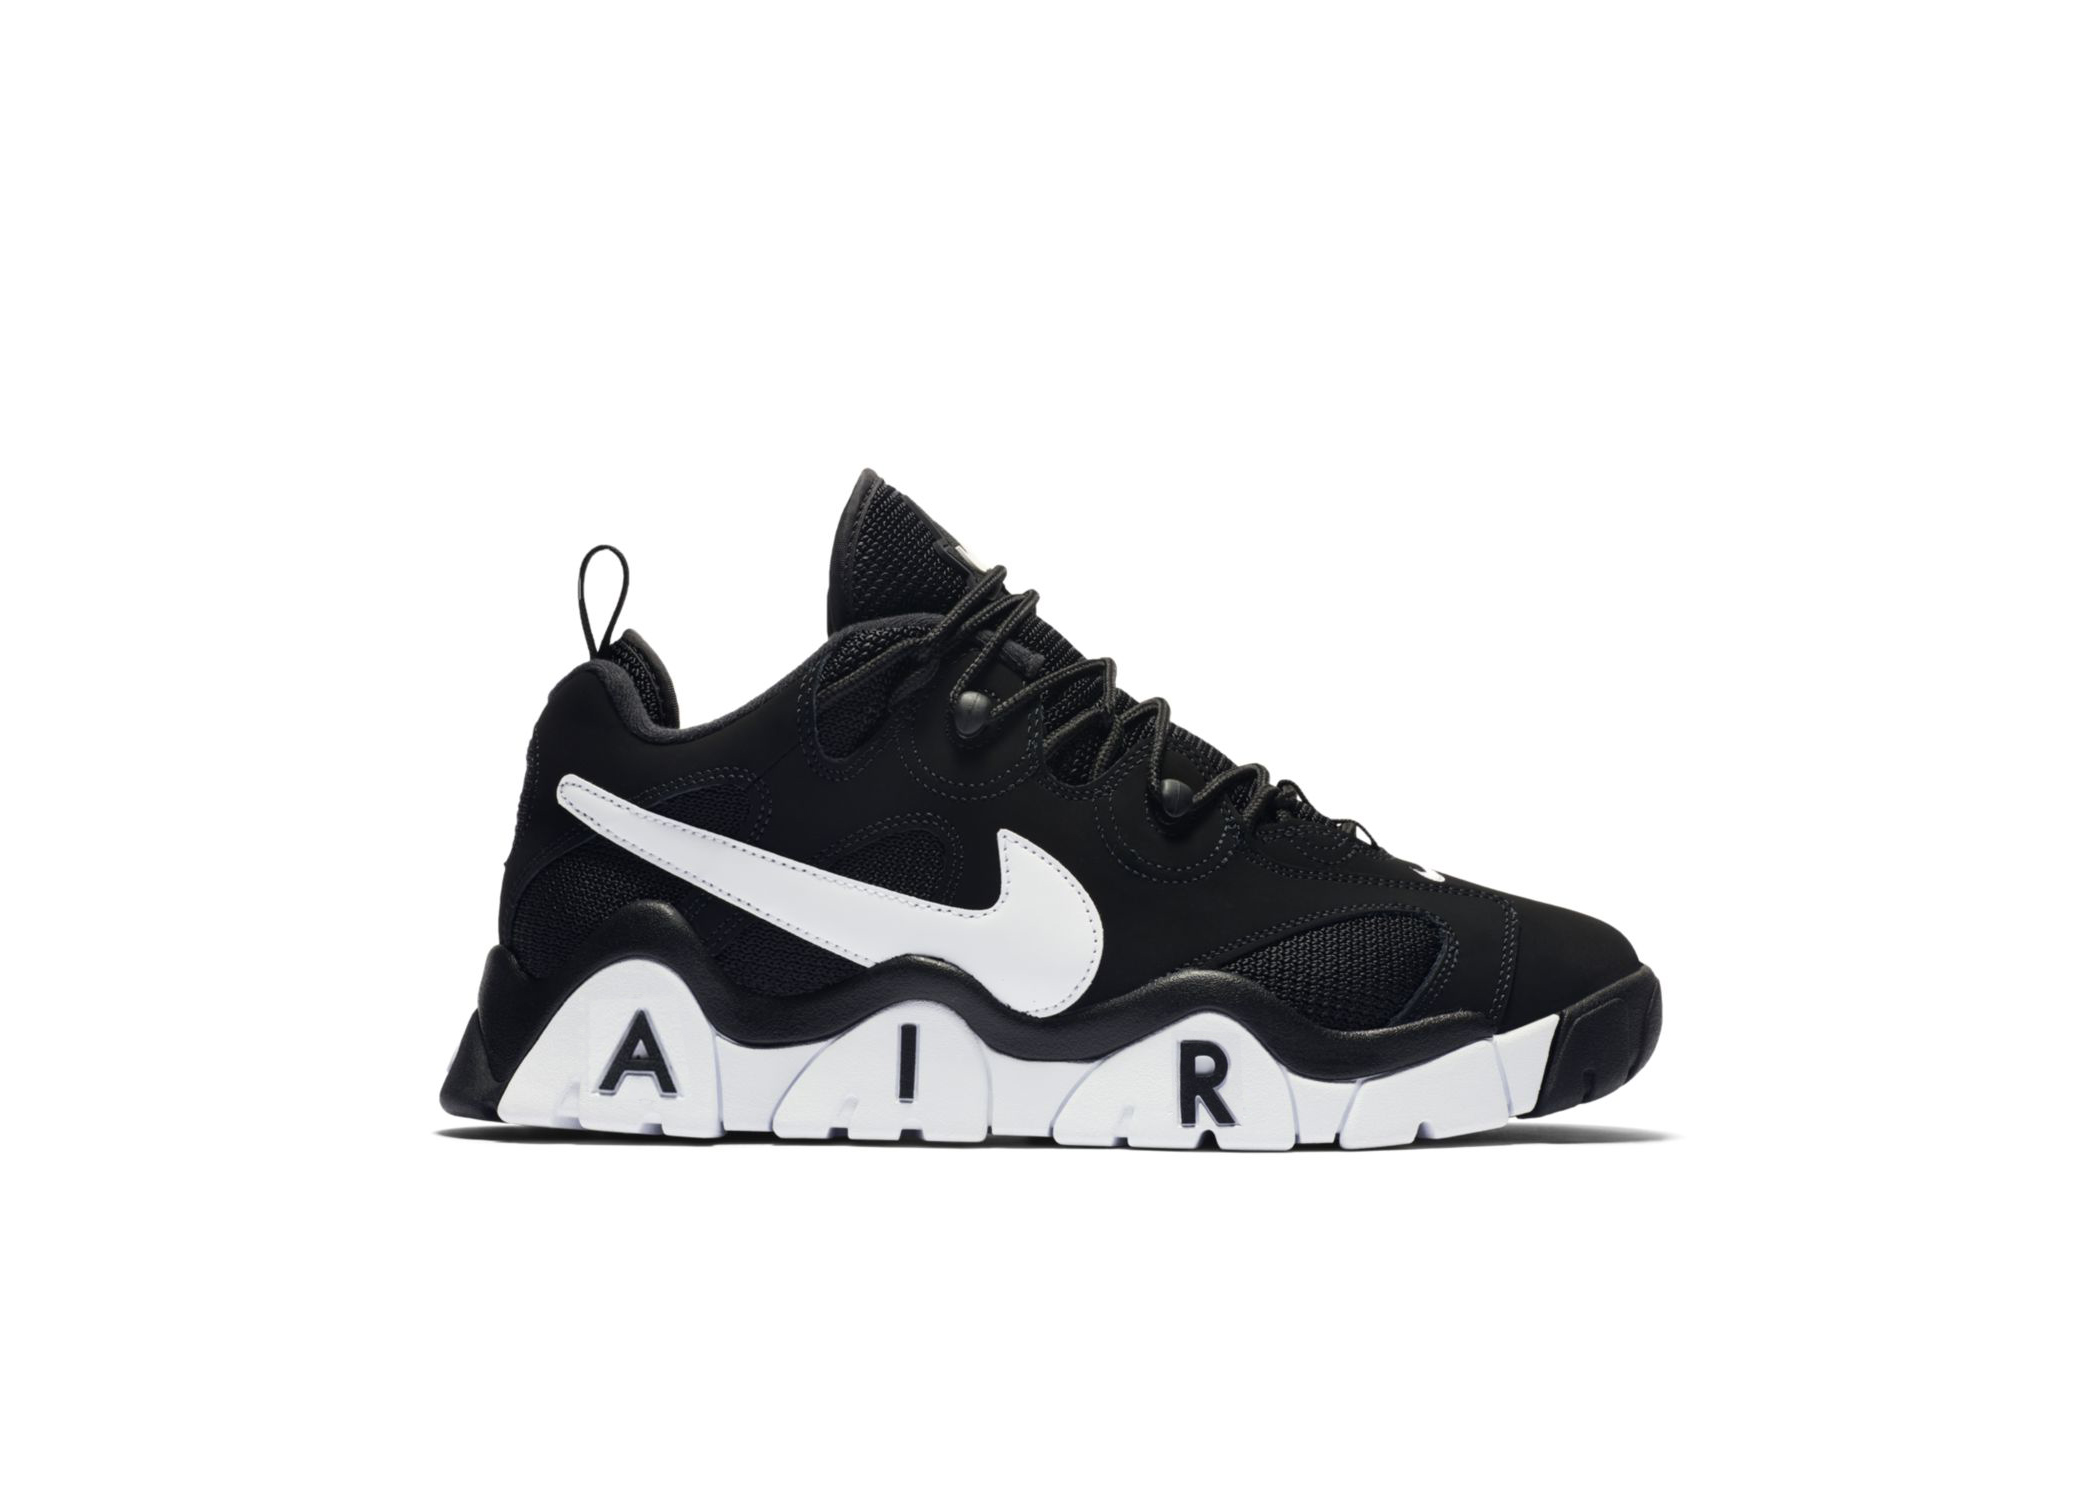 Nike Air Barrage Low Shoe.